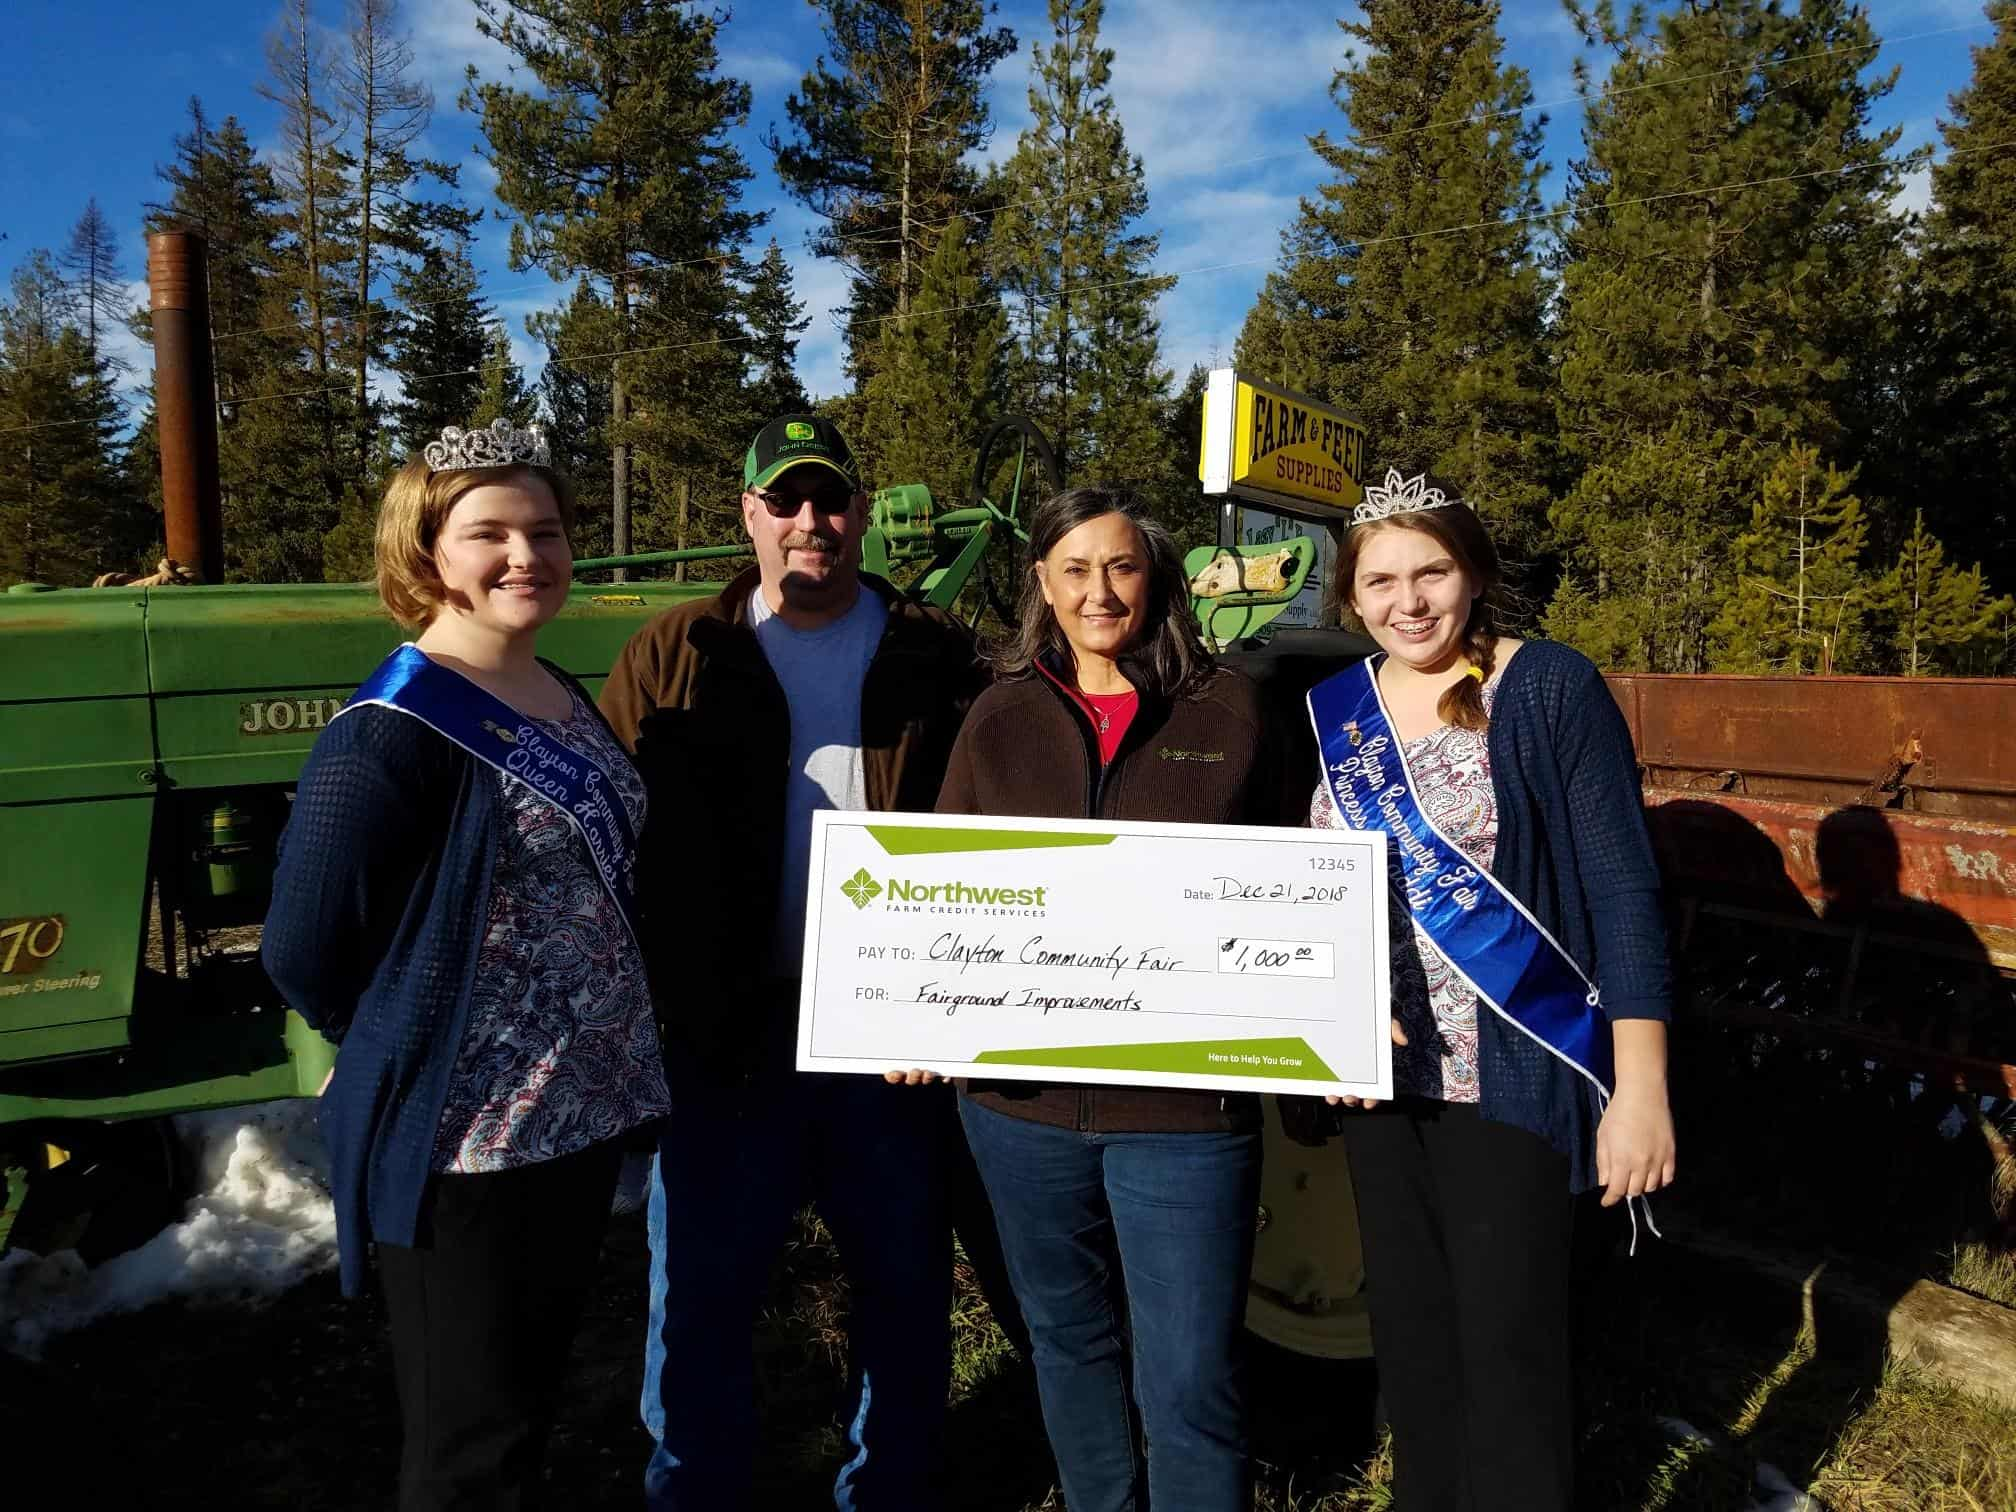 All smiles with the receipt of funds to help improvements are Clayton Community Fair Queen Harriet, Loren Lentz, a Northwest Farm Credit Services representative, and Clayton Community Fair Princess Maddi